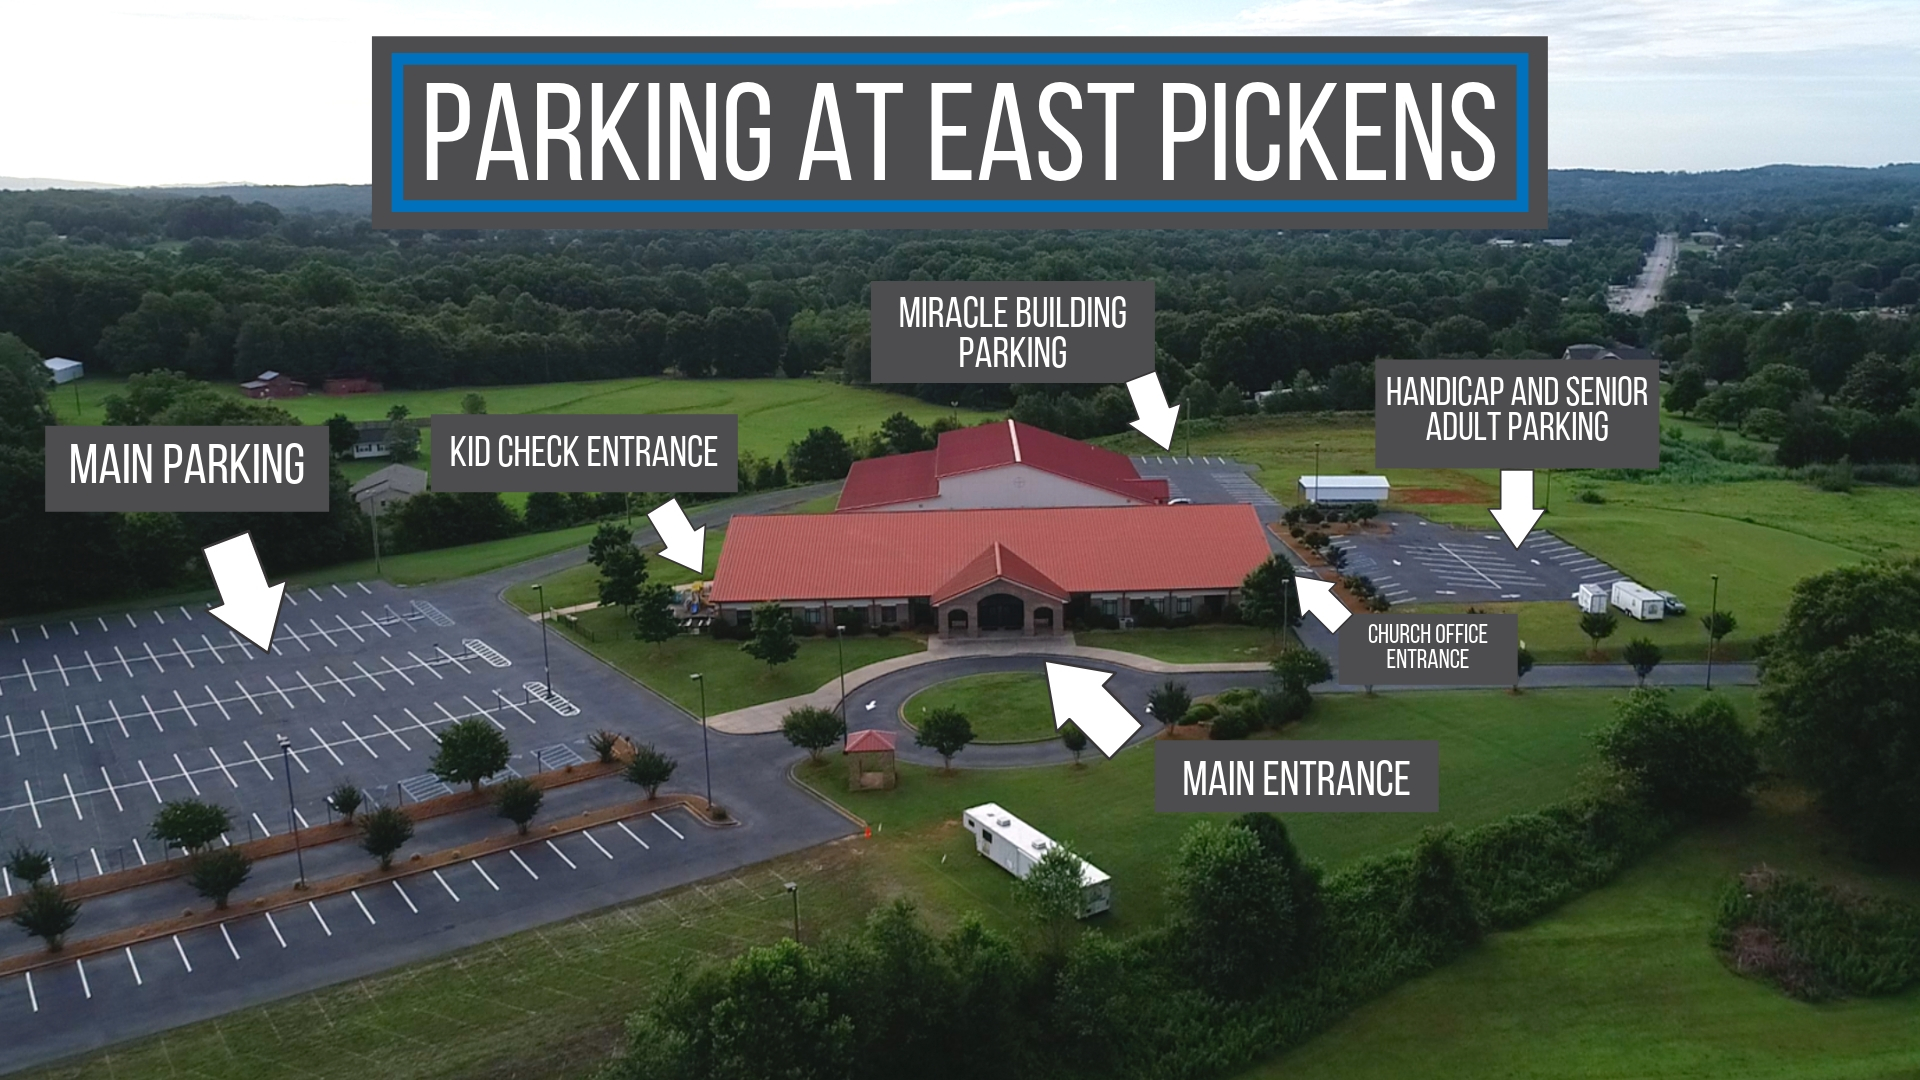 Parking at East Pickens.jpg